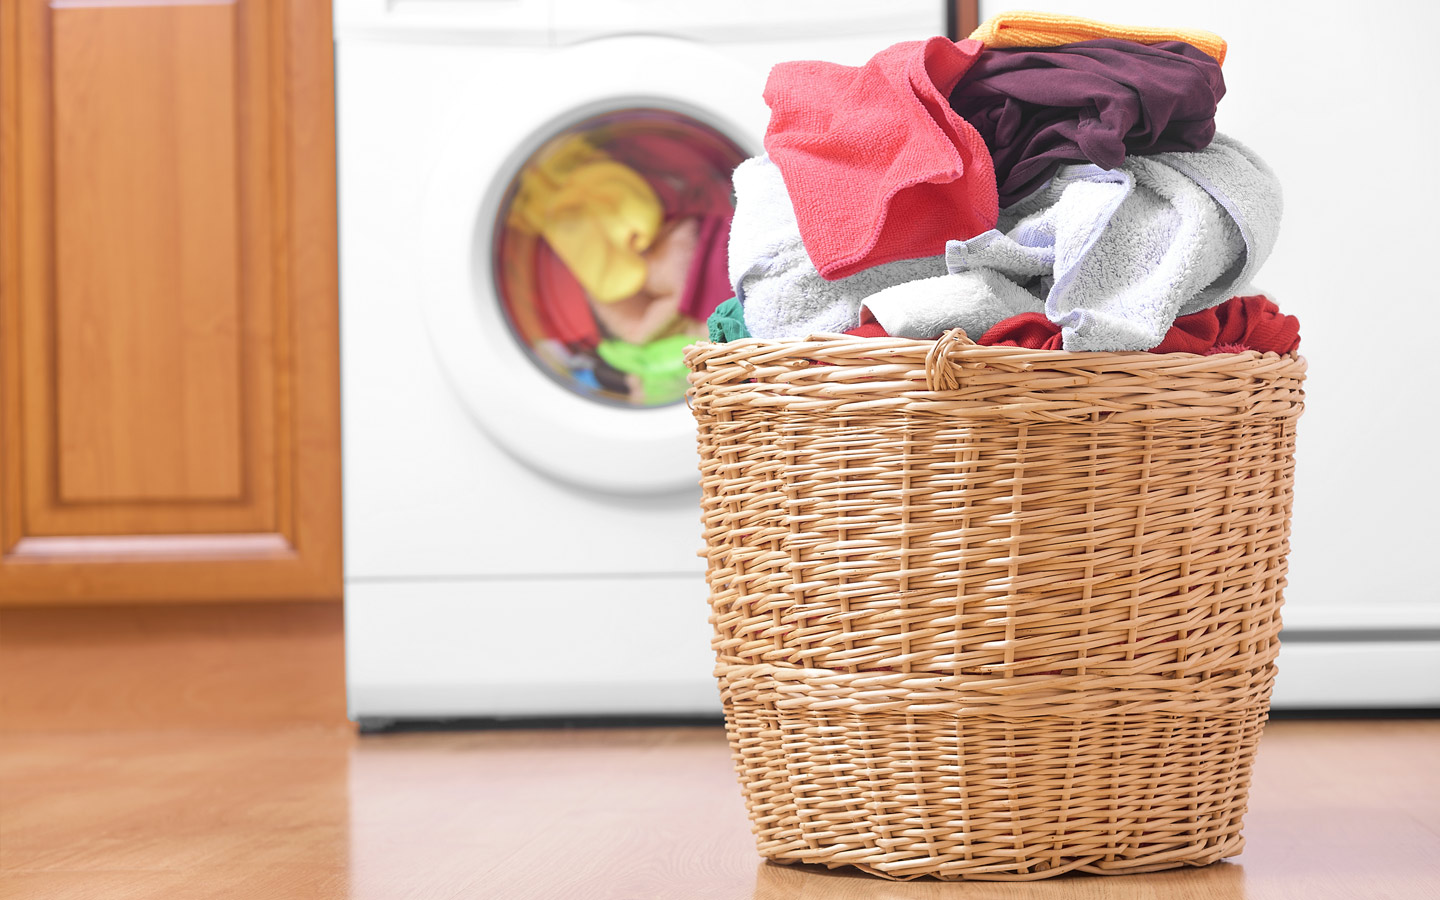 apps to improve your life, apps to make life more convenient, Washmen UAE